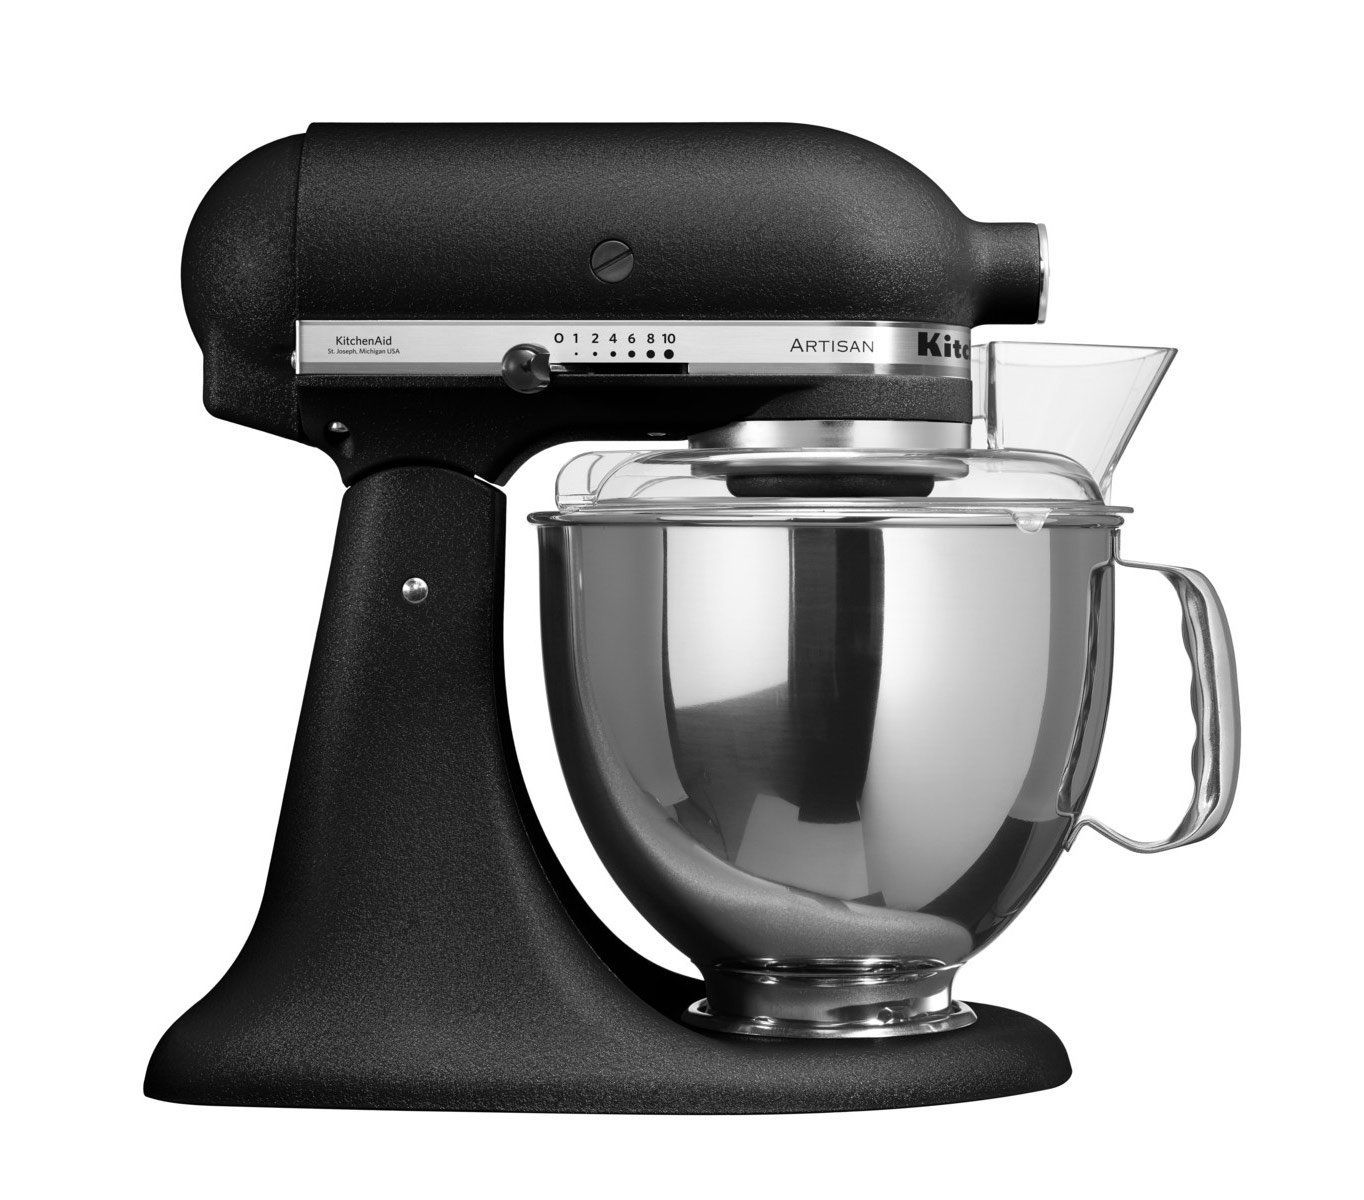 Amazon Küchenmaschine Amazon De Kitchenaid 5ksm150psebk Küchenmaschine Castiron Black